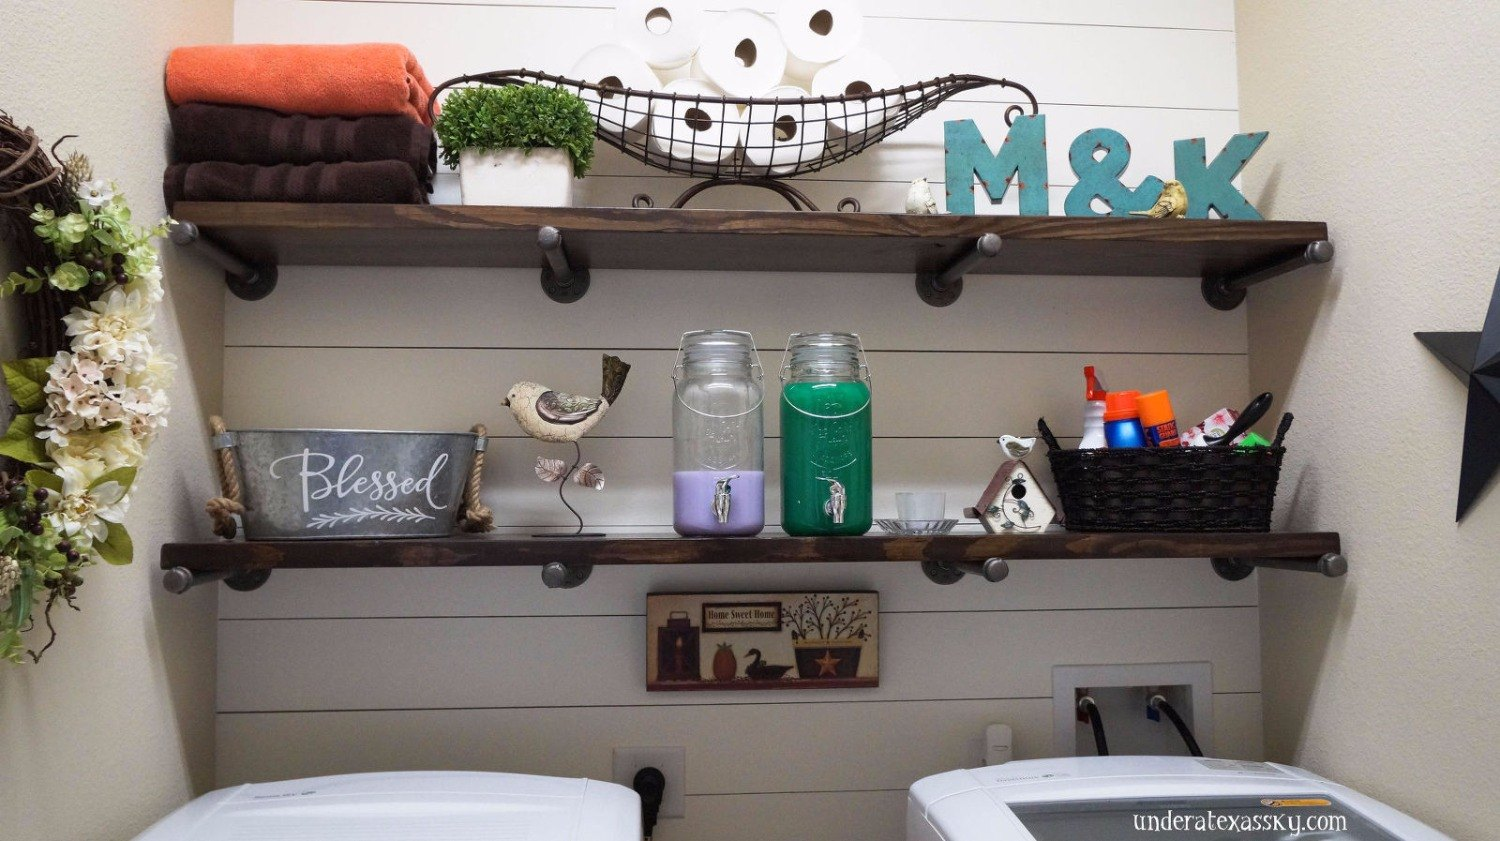 12 shiplap ideas that are hot right now hometalk - Laundry room wall ideas ...